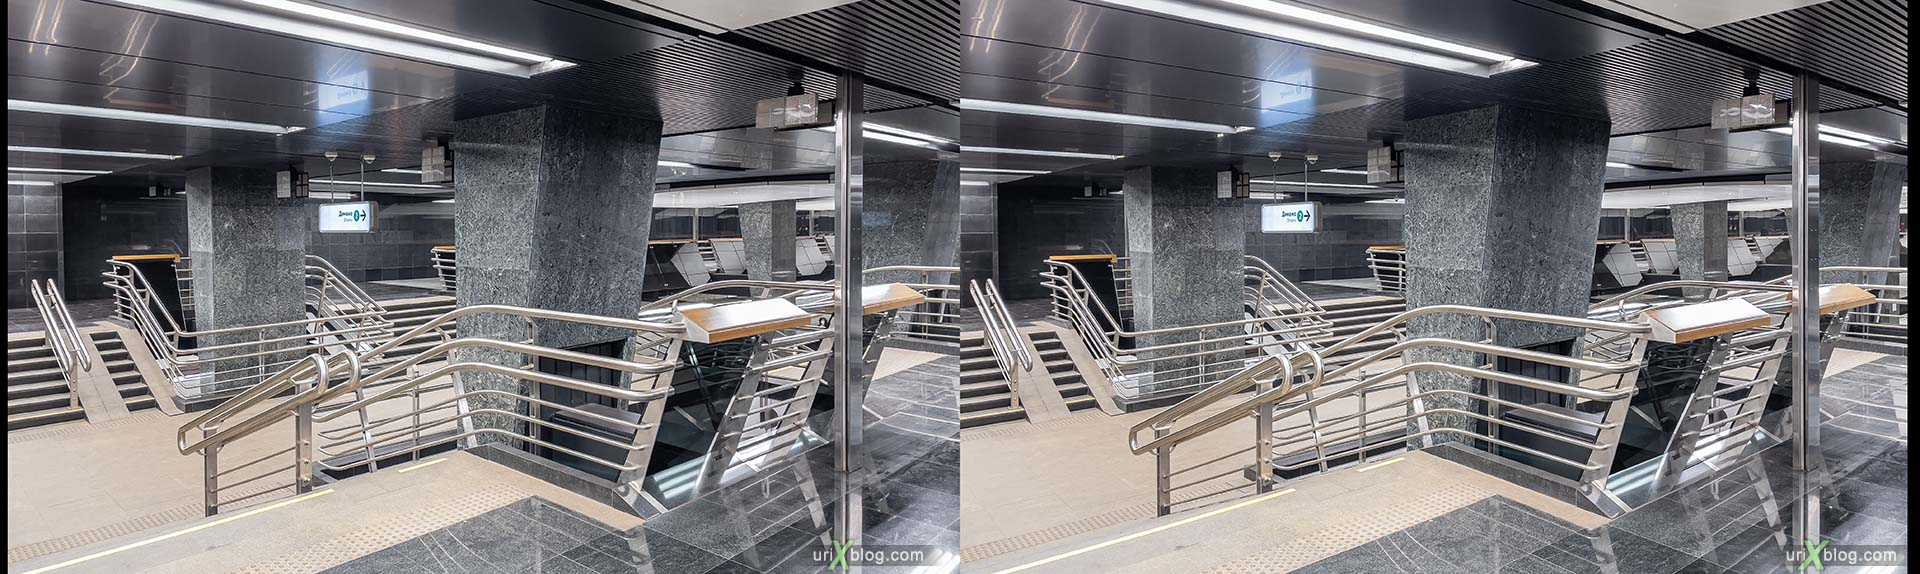 metro, Moscow, Russia, Dynamo, Petrovsky Park, 3D, stereo pair, cross-eyed, crossview, cross view stereo pair, stereoscopic